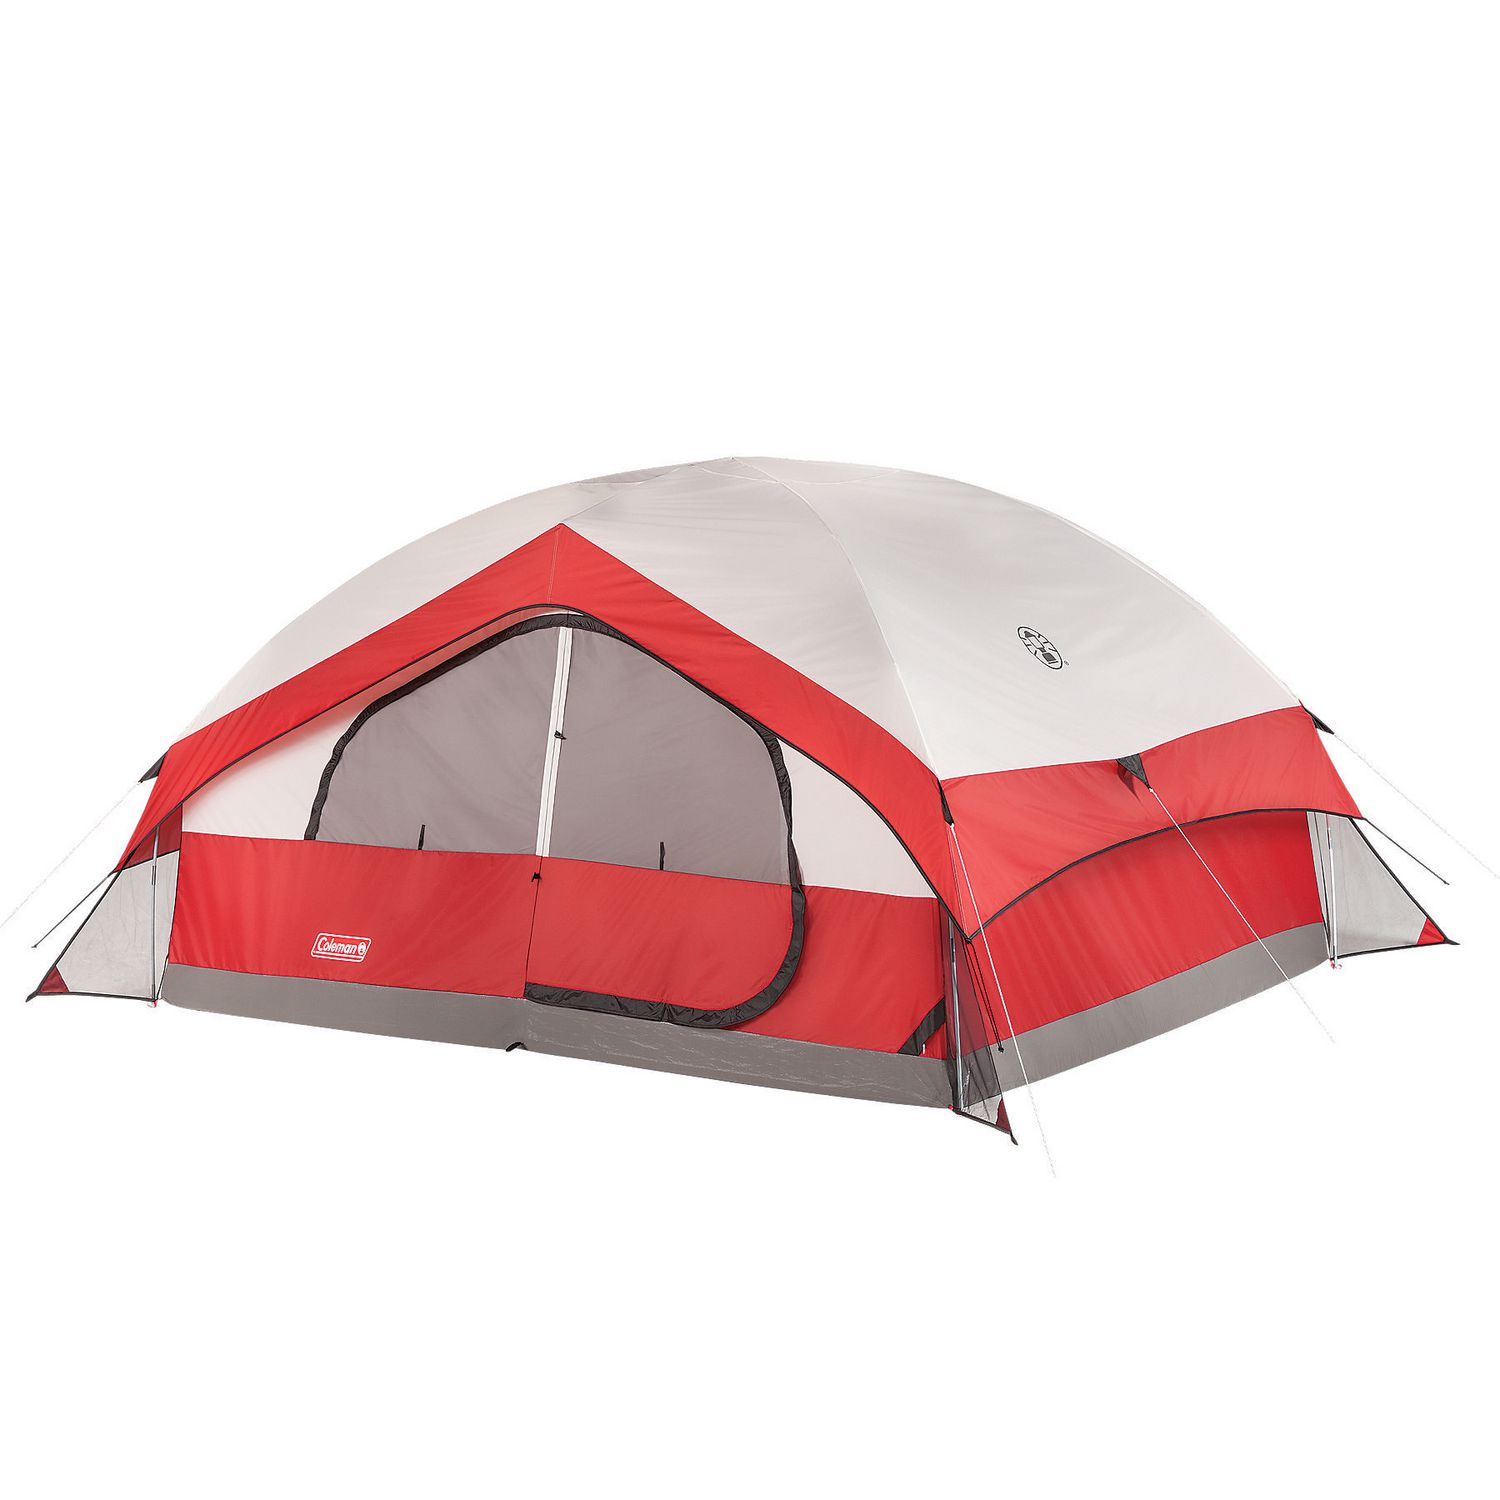 Coleman Tent Costco 4 Person Amp Coleman Mountain View